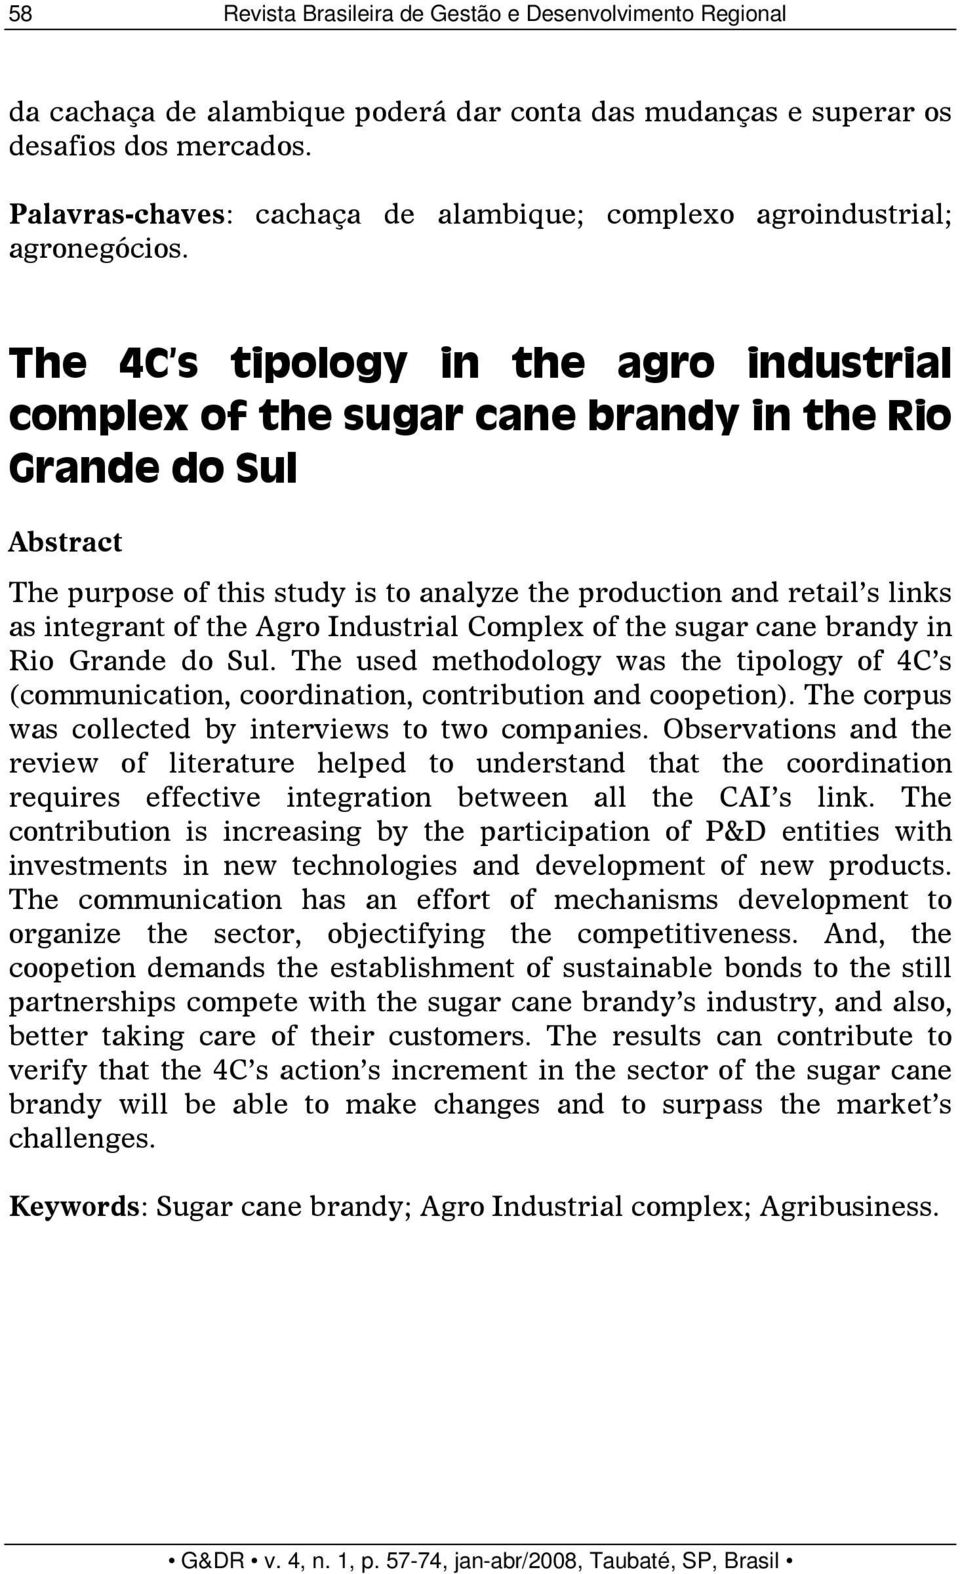 The 4C s tipology in the agro industrial complex of the sugar cane brandy in the Rio Grande do Sul Abstract The purpose of this study is to analyze the production and retail s links as integrant of